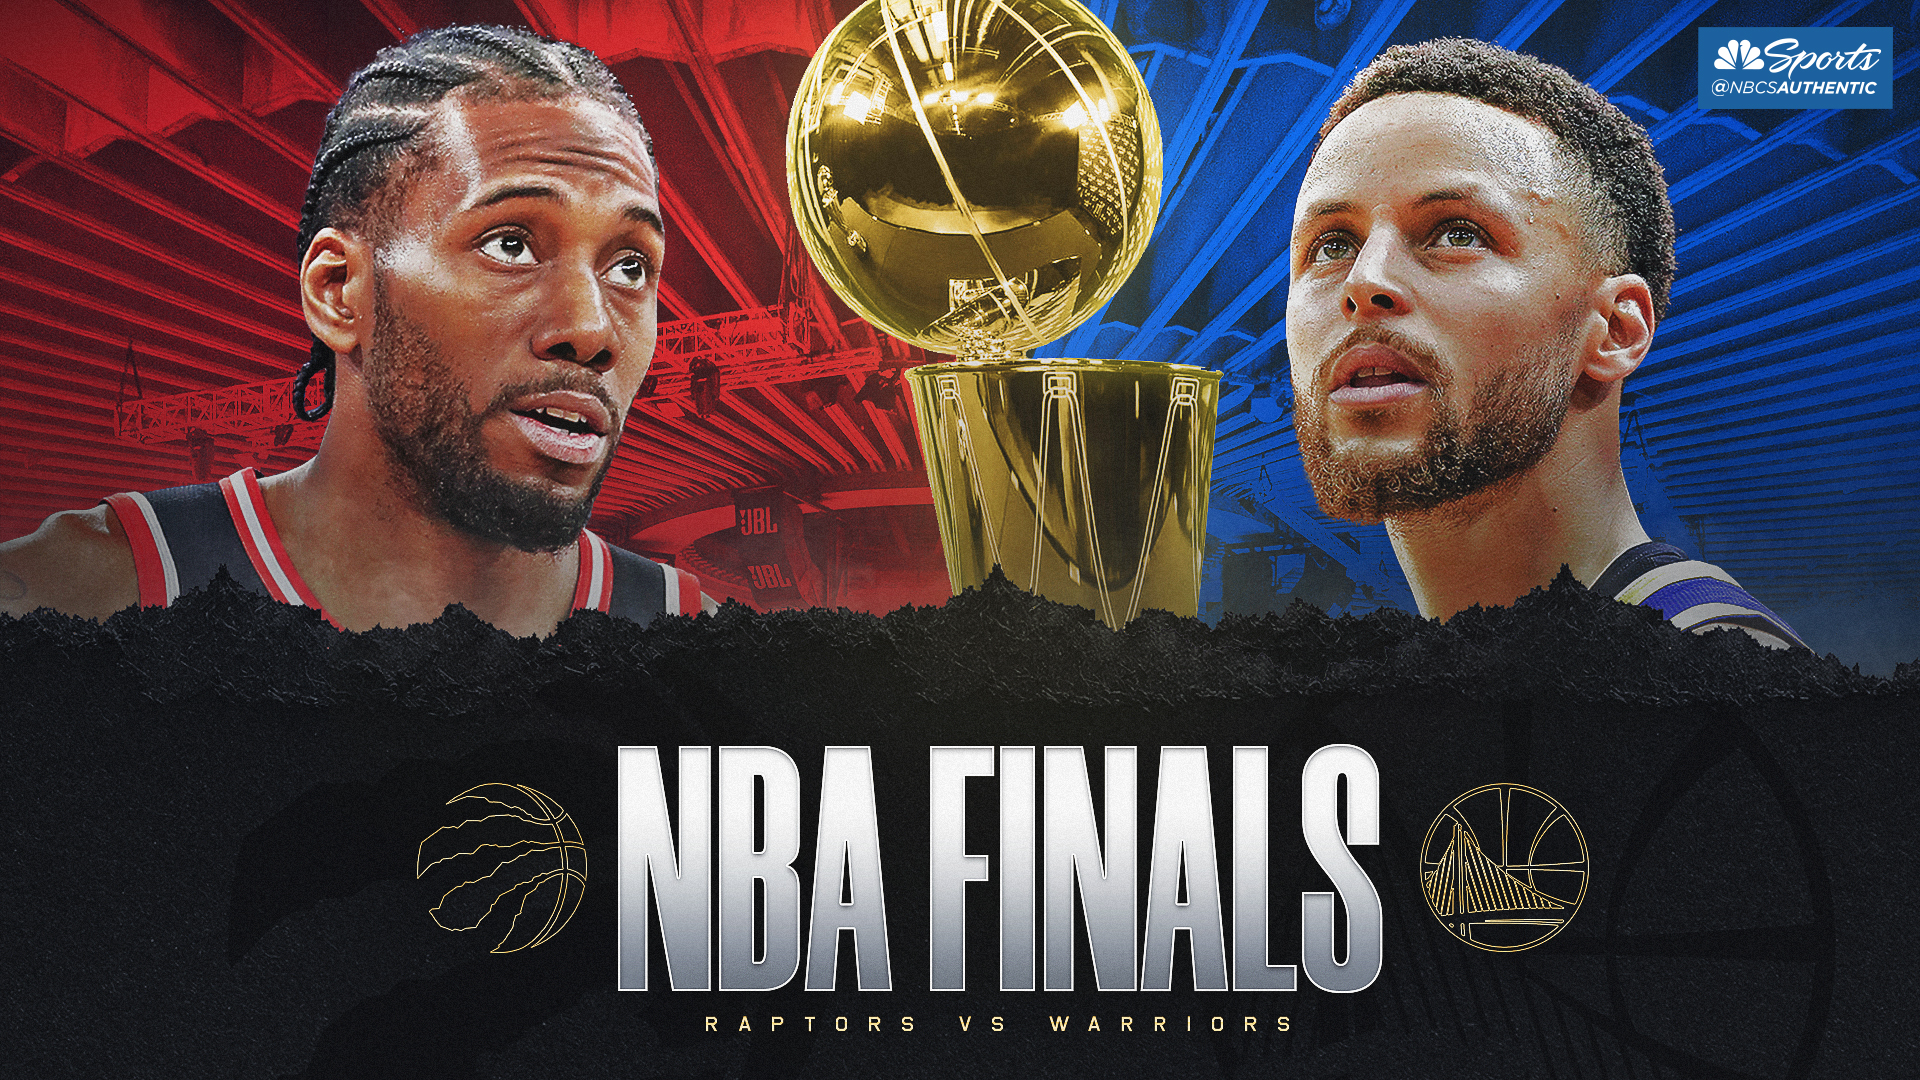 Warriors vs Raptors preview Who has edge in 2019 NBA Finals 1920x1080